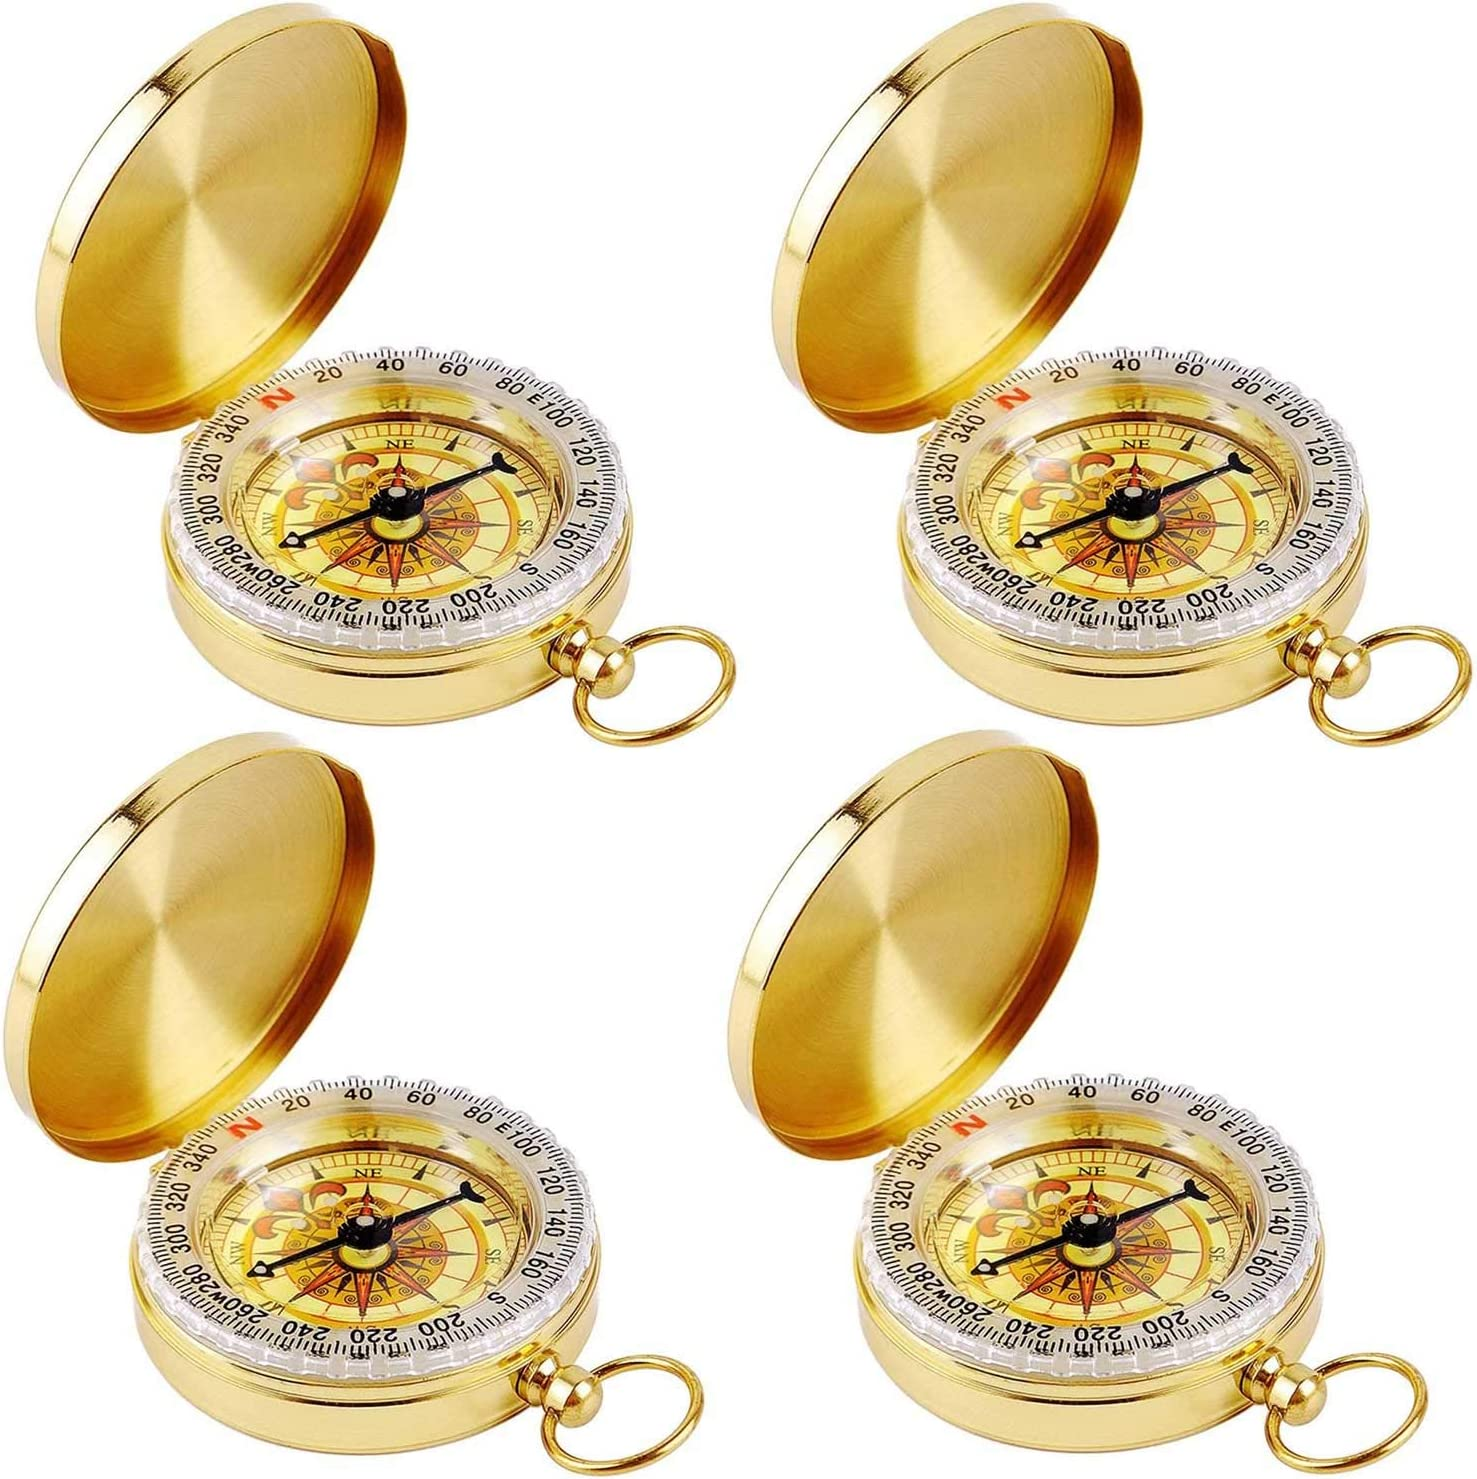 Aubric Classic Antique Golden Compass Spring new work one after another Pocket for C Max 51% OFF Survival Kids